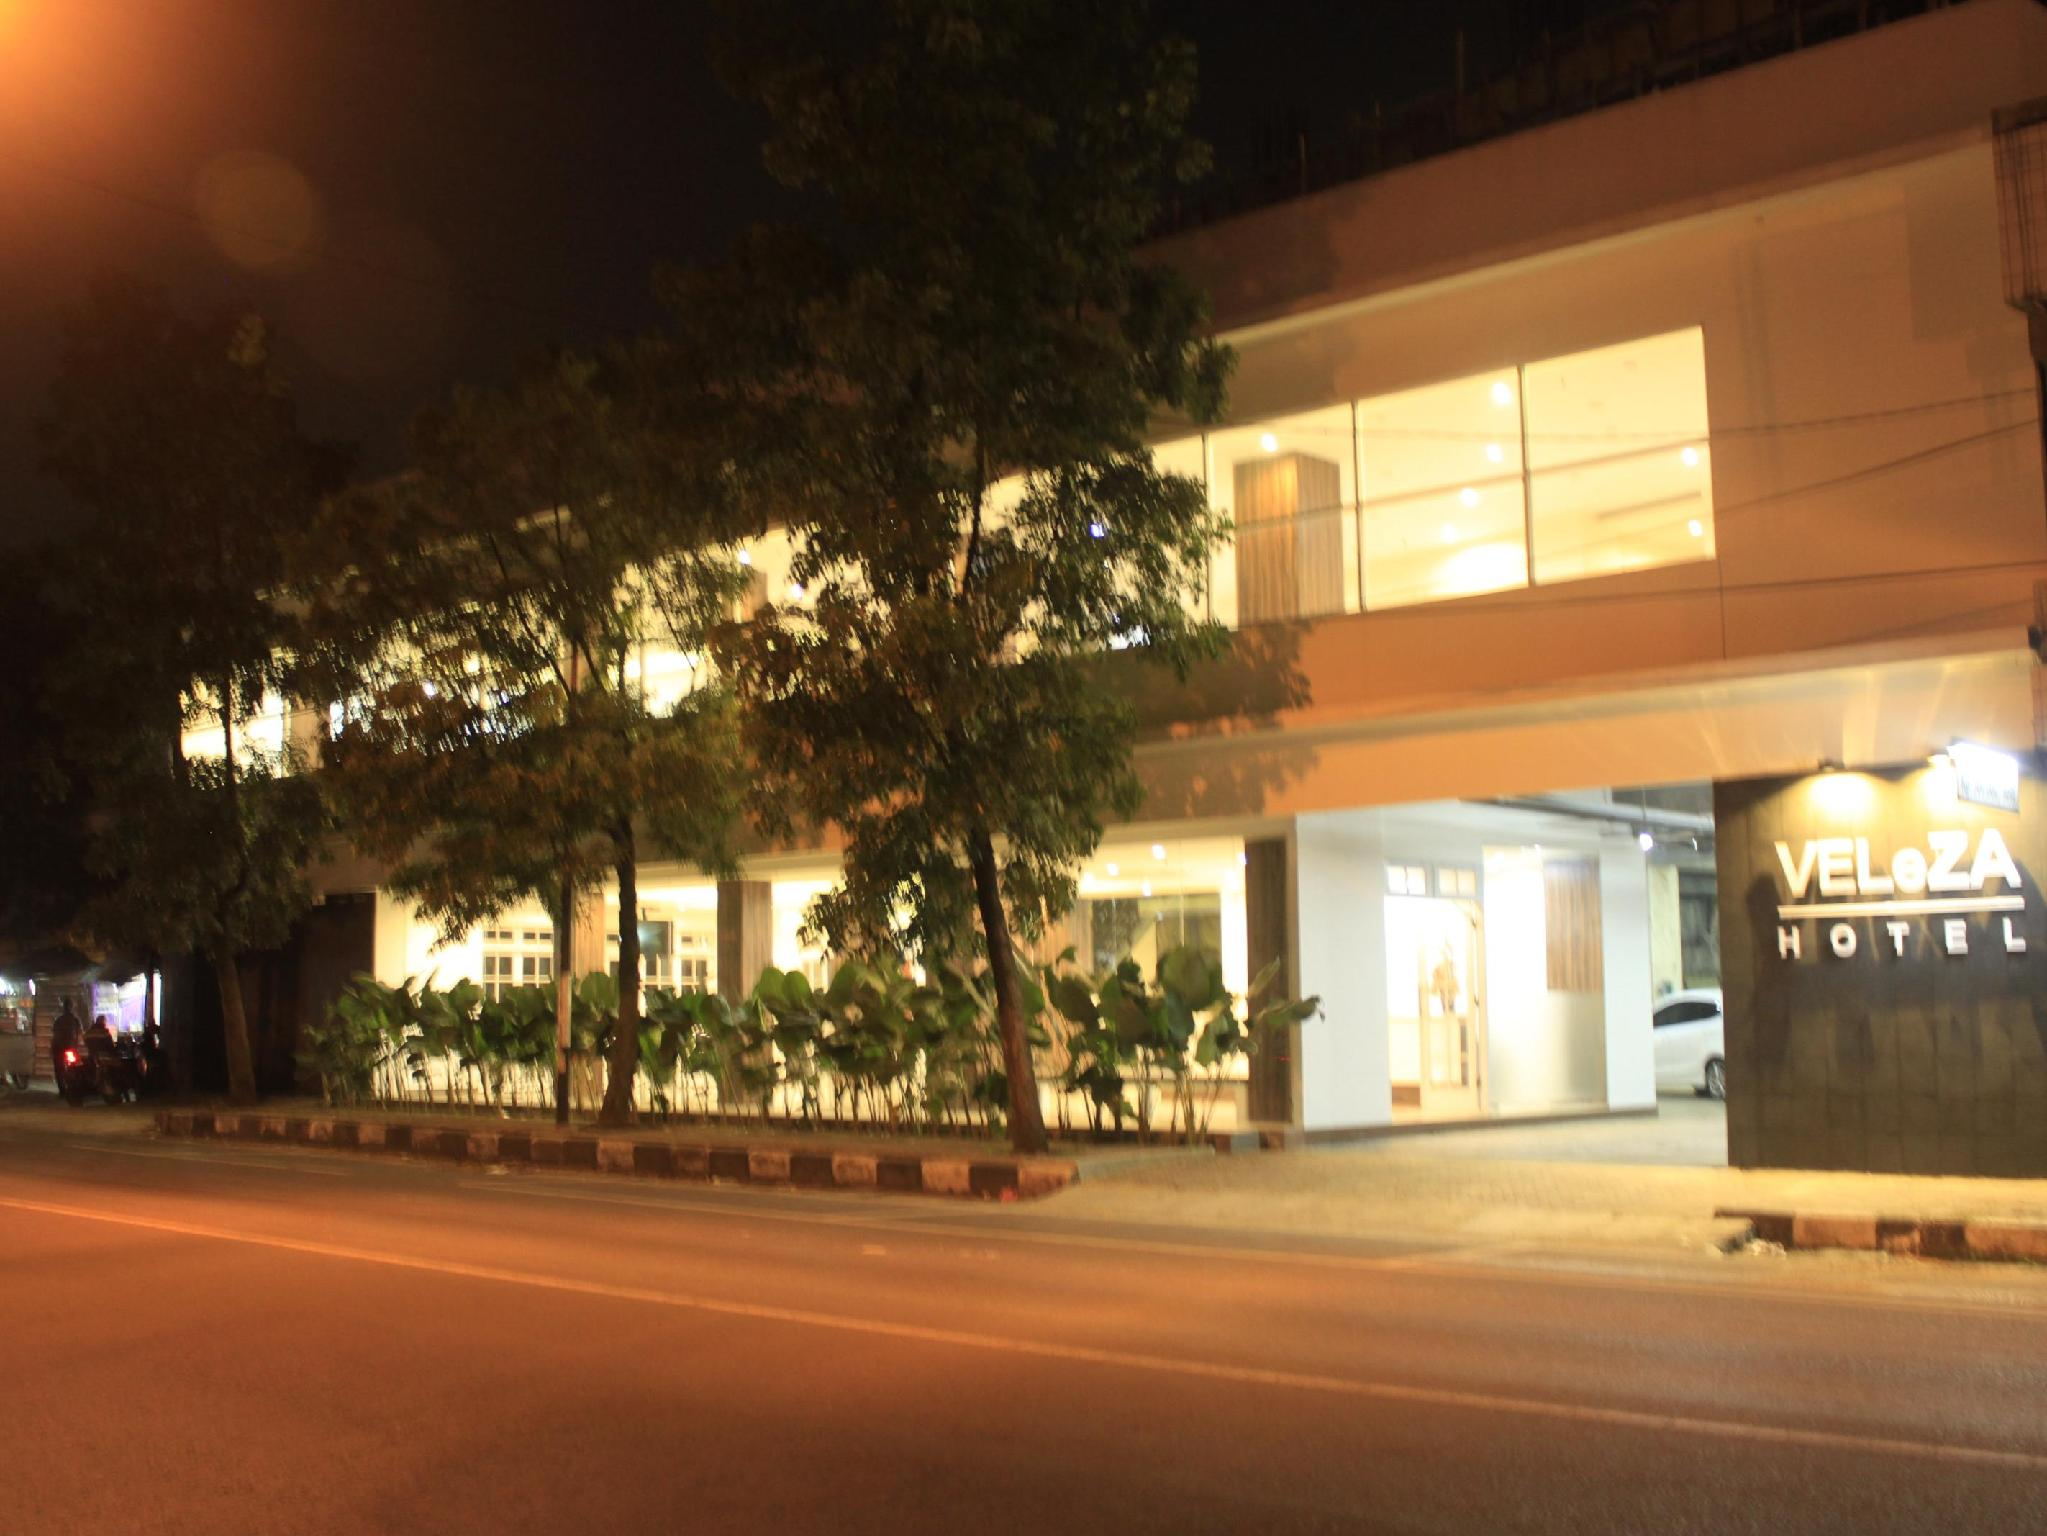 Veleza Hotel - Hotels and Accommodation in Indonesia, Asia